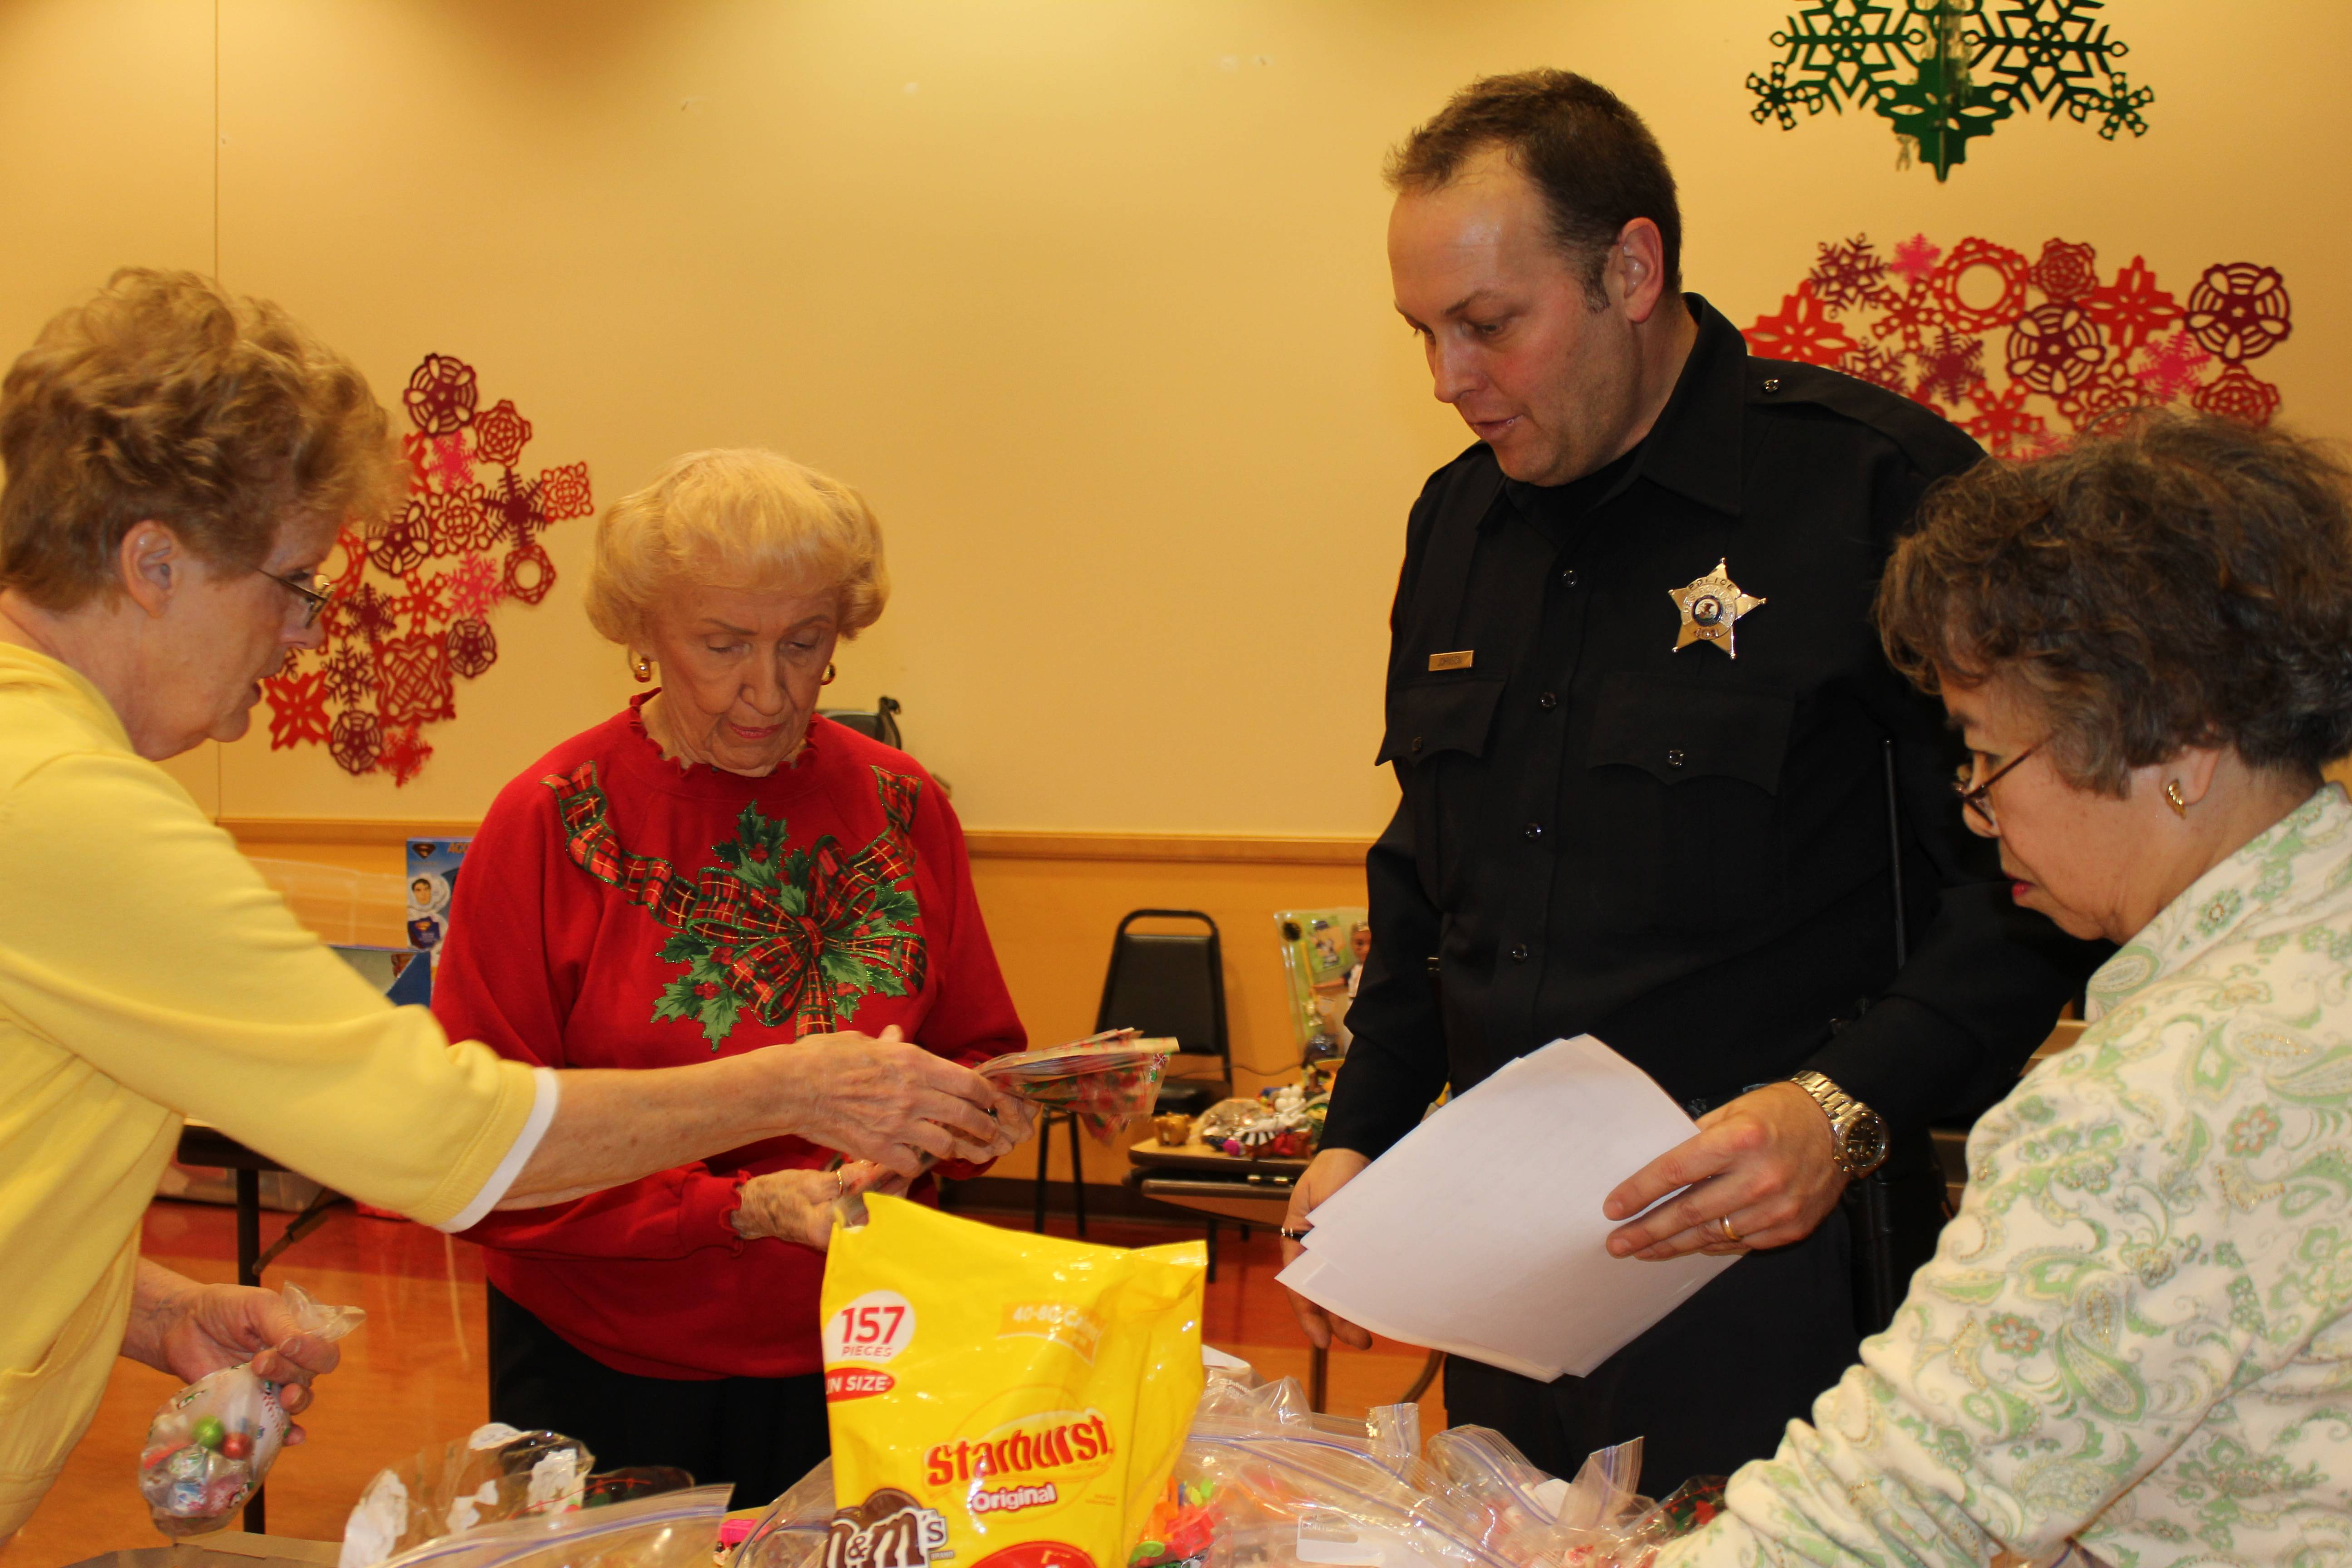 (pictured left to right) Volunteers Pat Miller and Helen Doney assist Des Plaines Police Officer Colin Johnson and volunteer Maria Lamblad at the wrapping party. (Not pictured Police Officer Michael Heidkamp.)